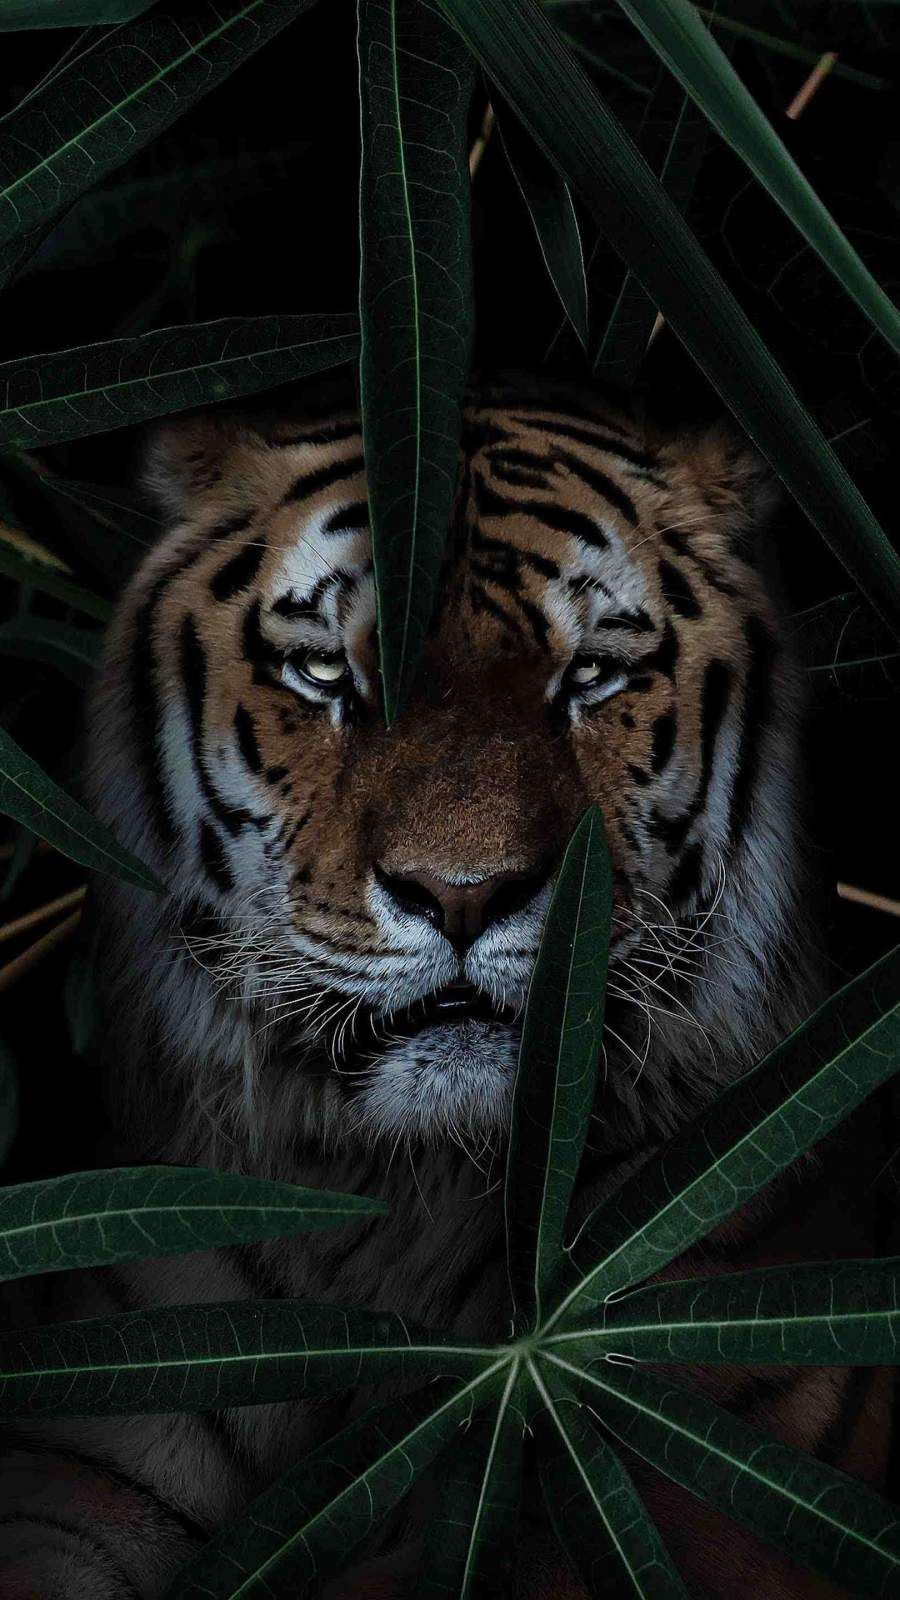 Wild Tiger Wallpaper Tiger Wallpaper Iphone Wallpaper Cat Wild Tiger